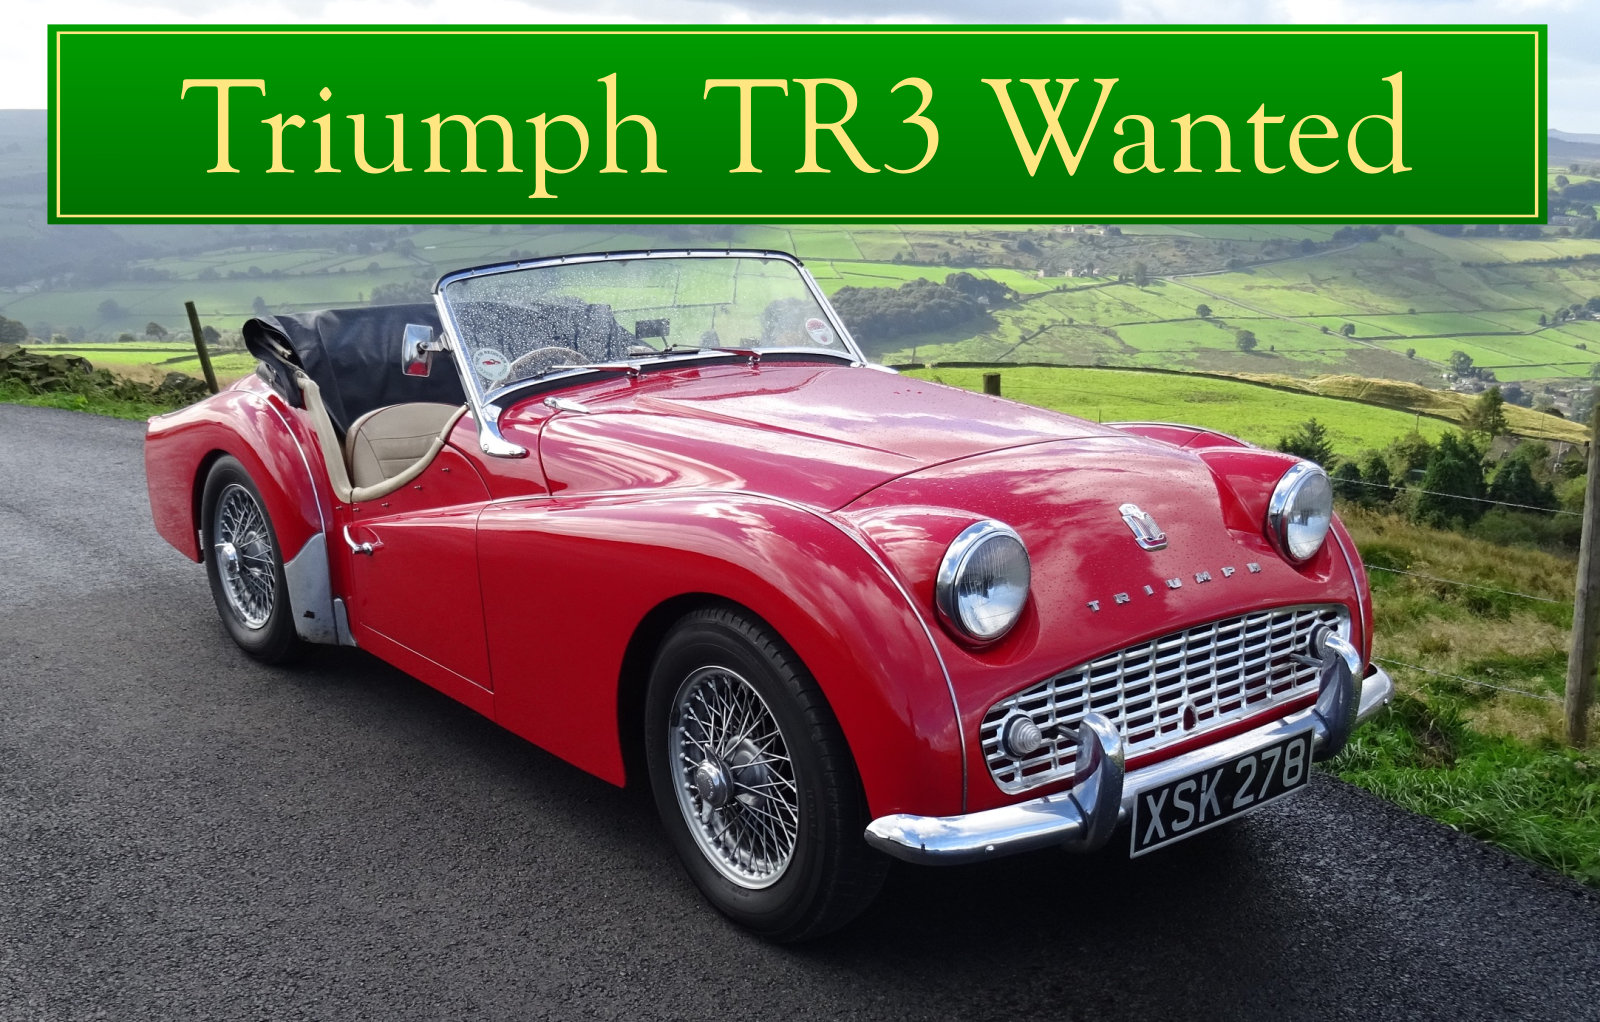 1955  TRIUMPH TR2 WANTED, CLASSIC CARS WANTED, QUICK PAYMENT Wanted (picture 2 of 6)